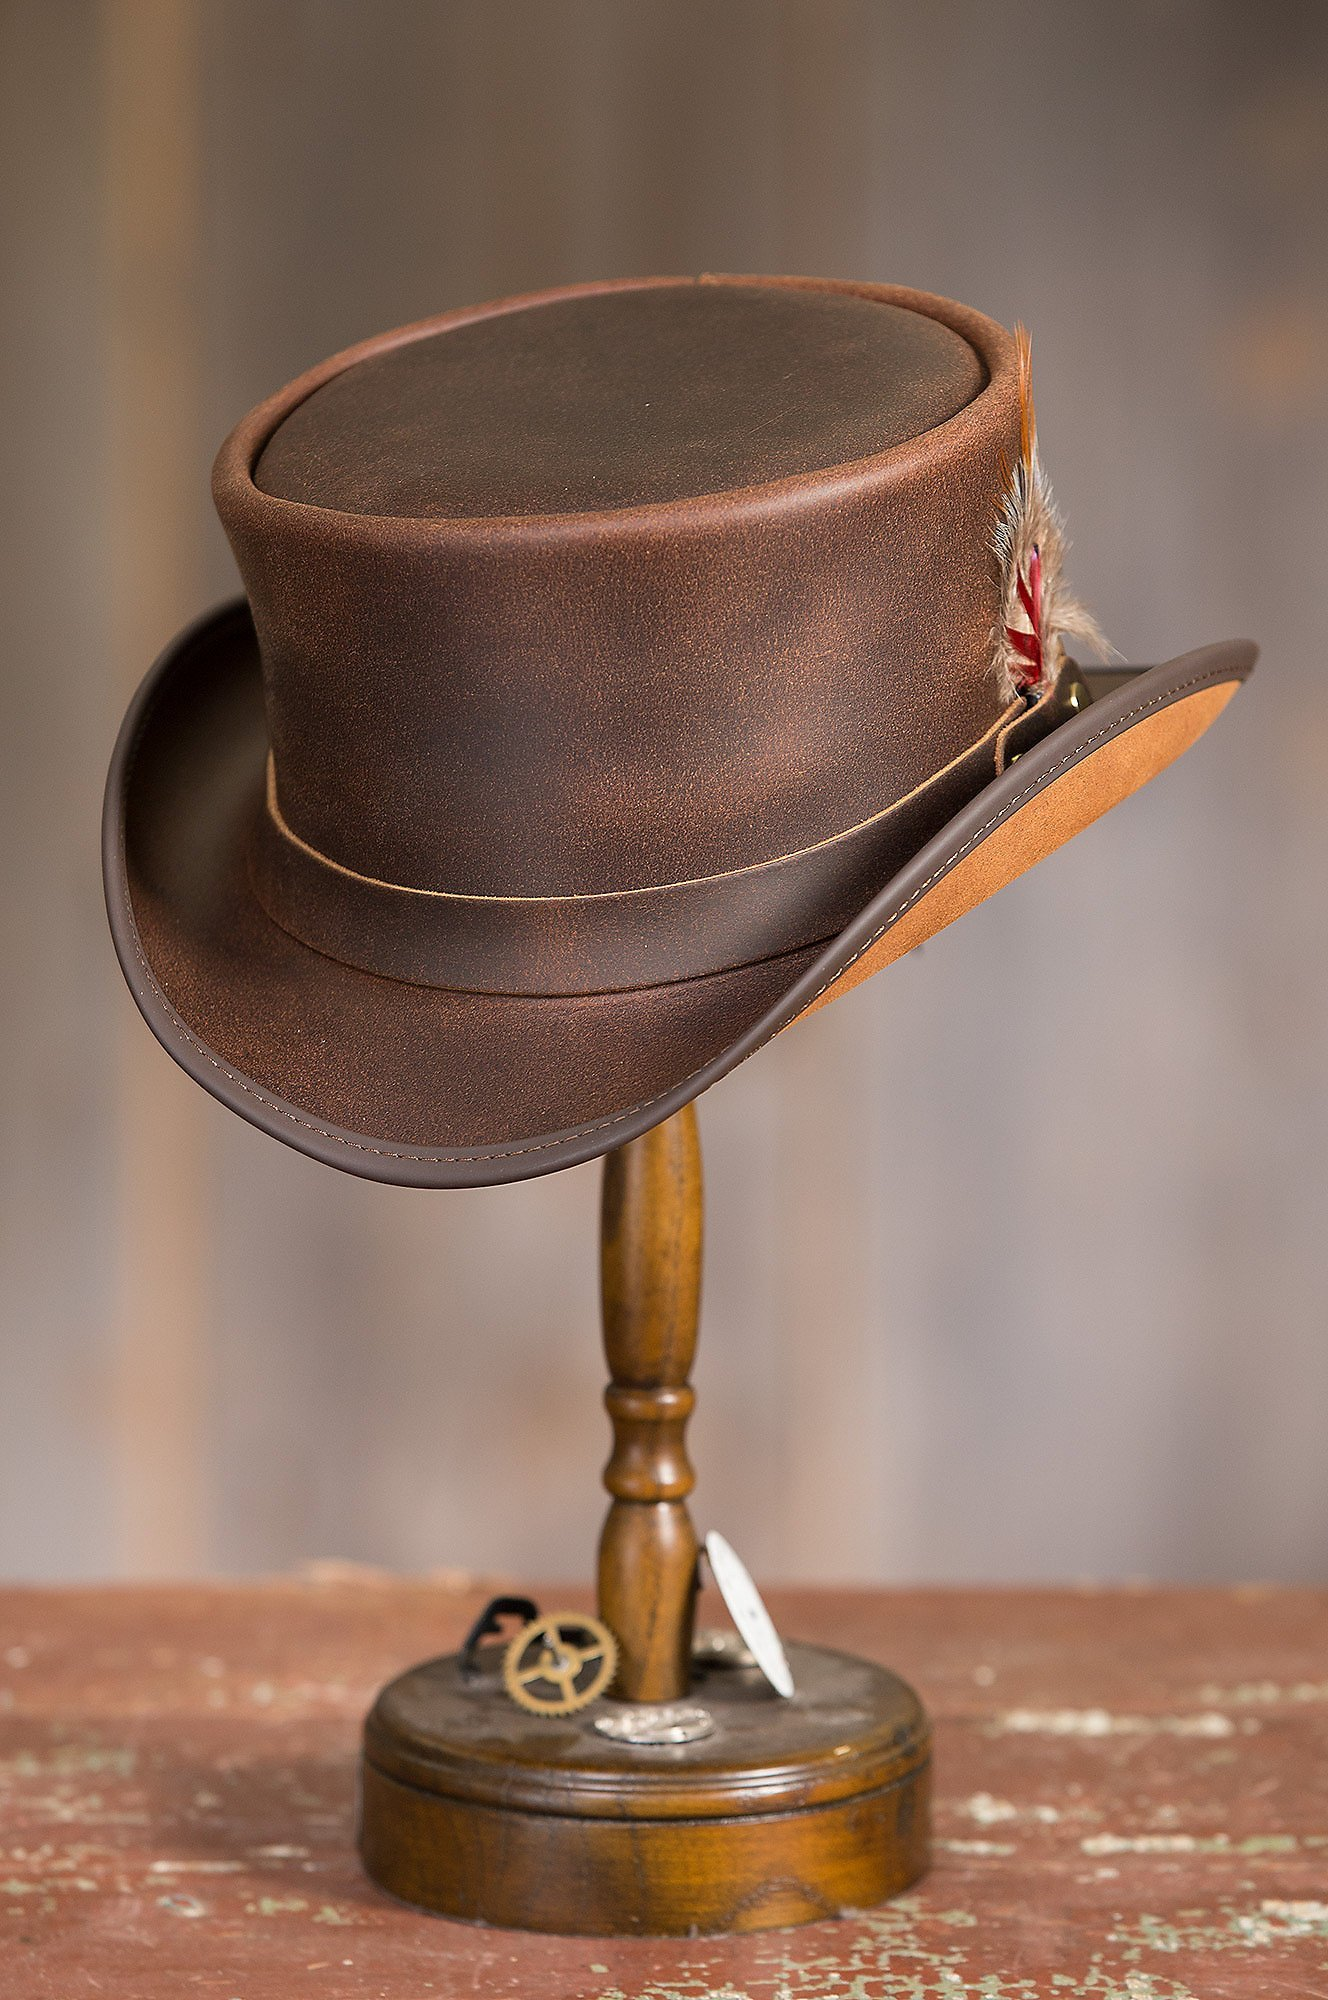 Overland Sheepskin Co. Steampunk Victorian Marlow Leather Top Hat, Brown, Size Medium (7) by Overland Sheepskin Co (Image #3)